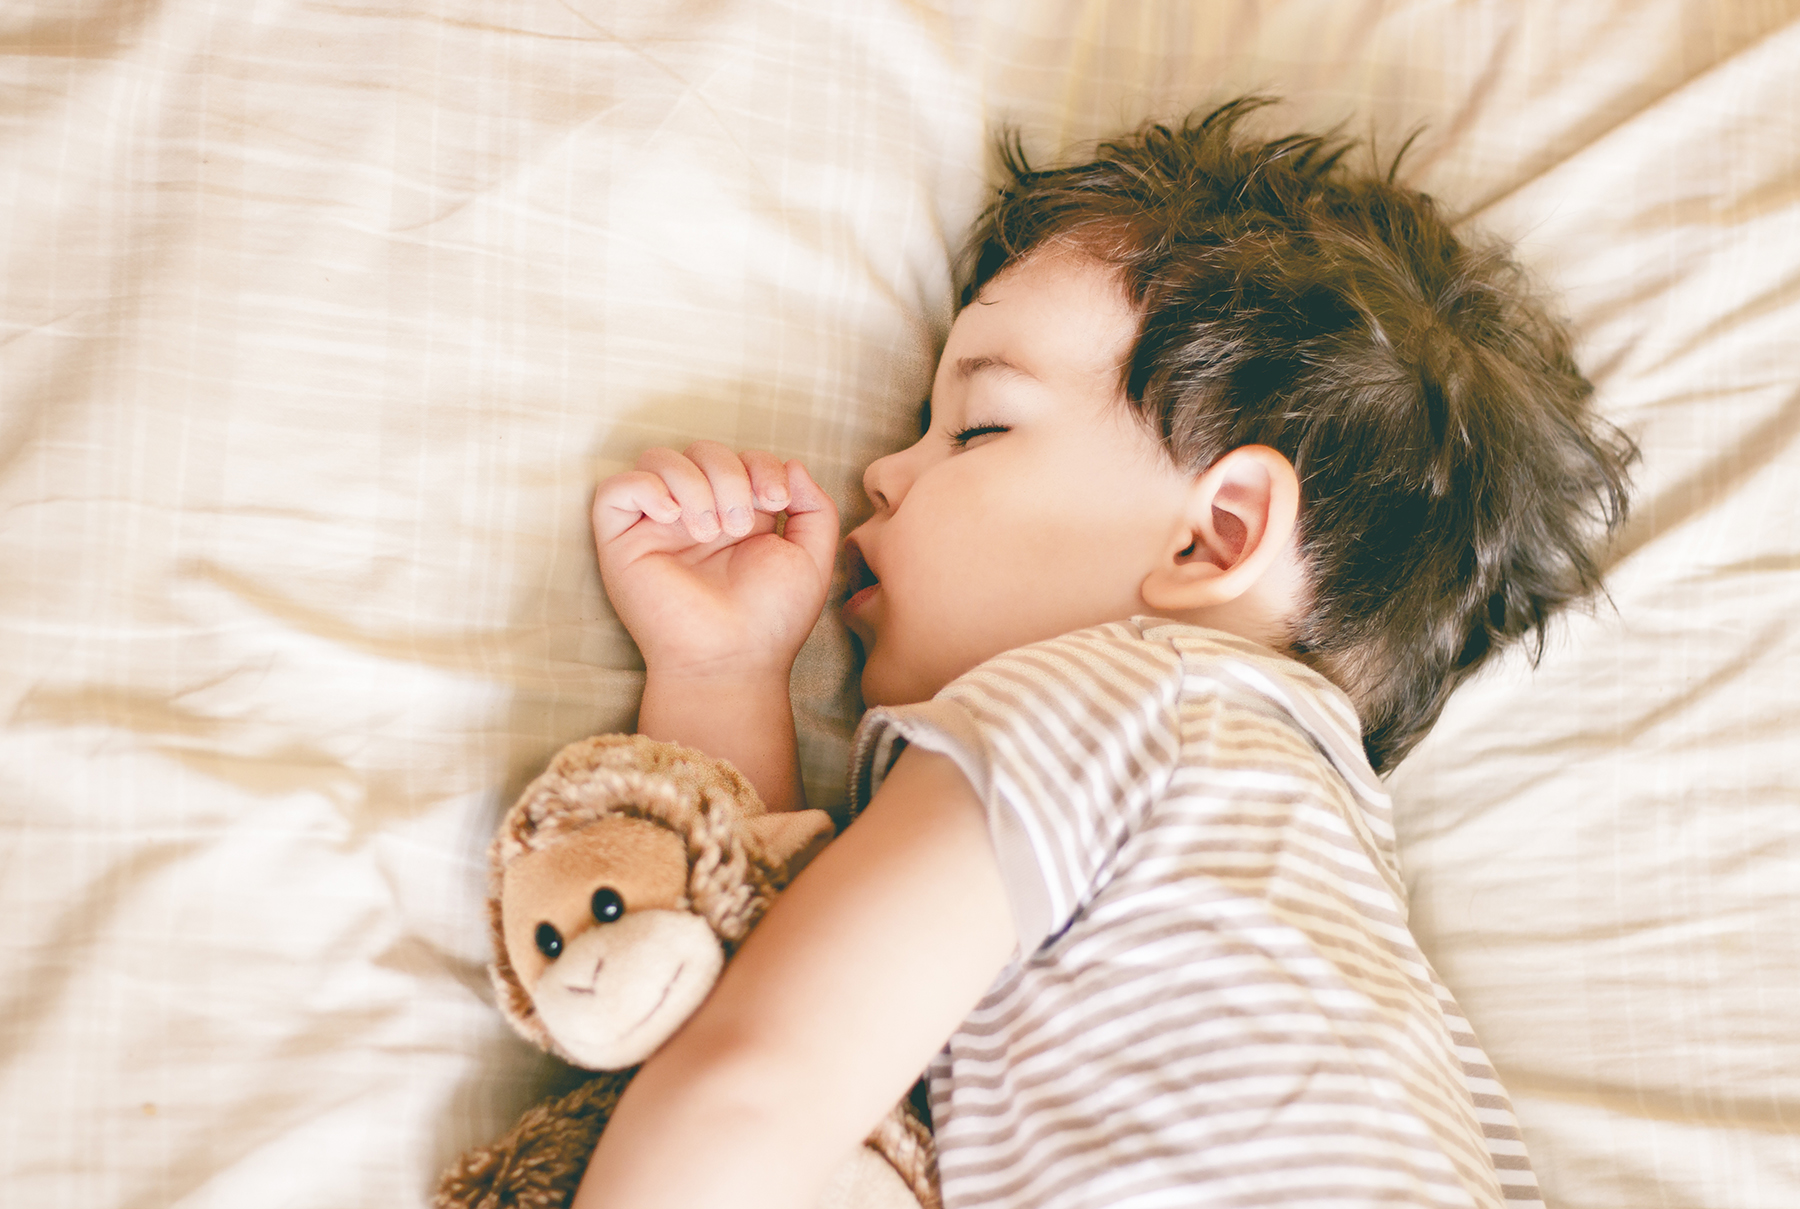 Toddler sleeping with stuffed monkey